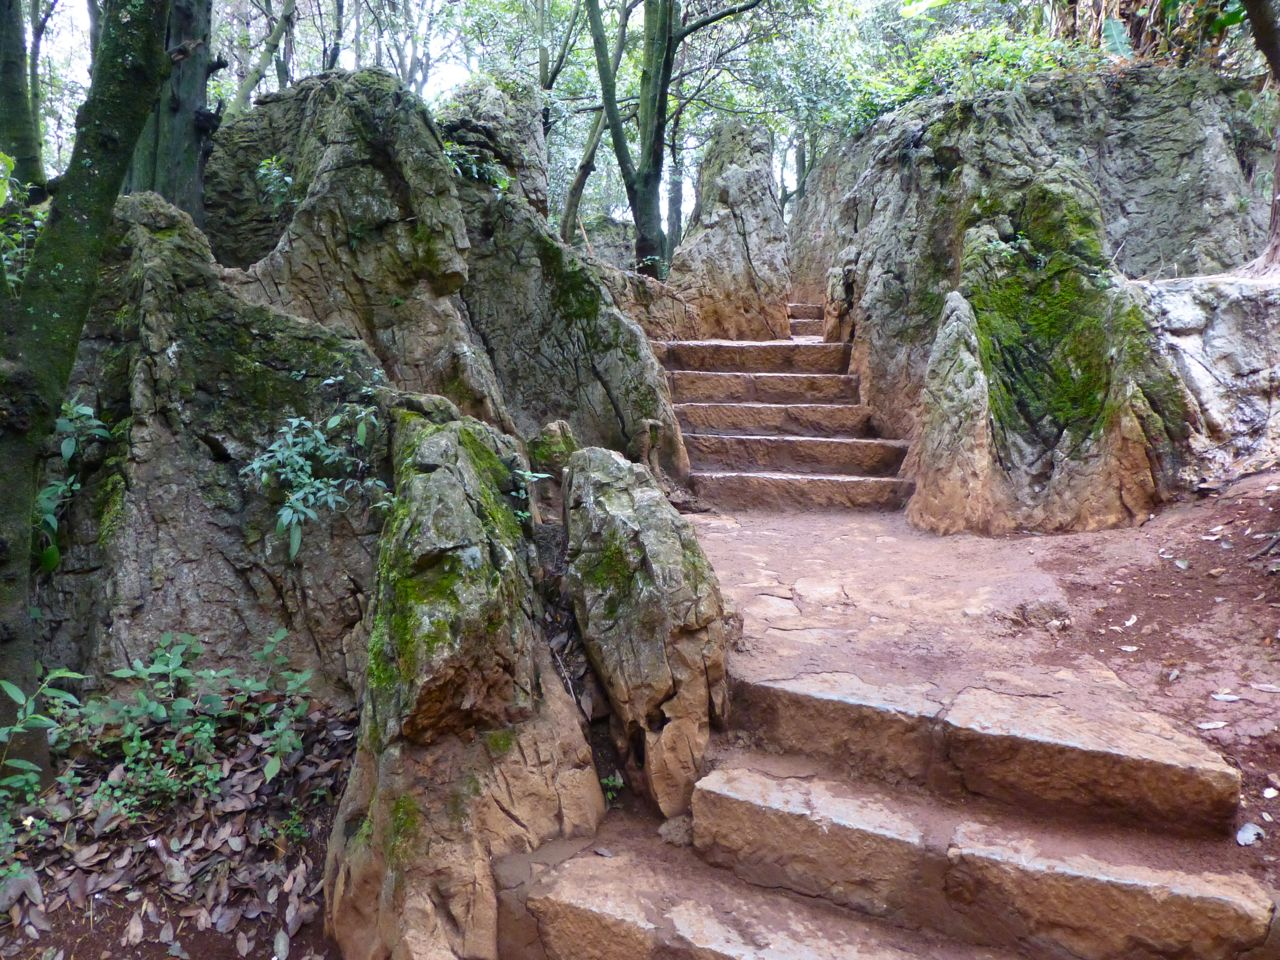 Many of the Xishan's paths are well-crafted stone steps